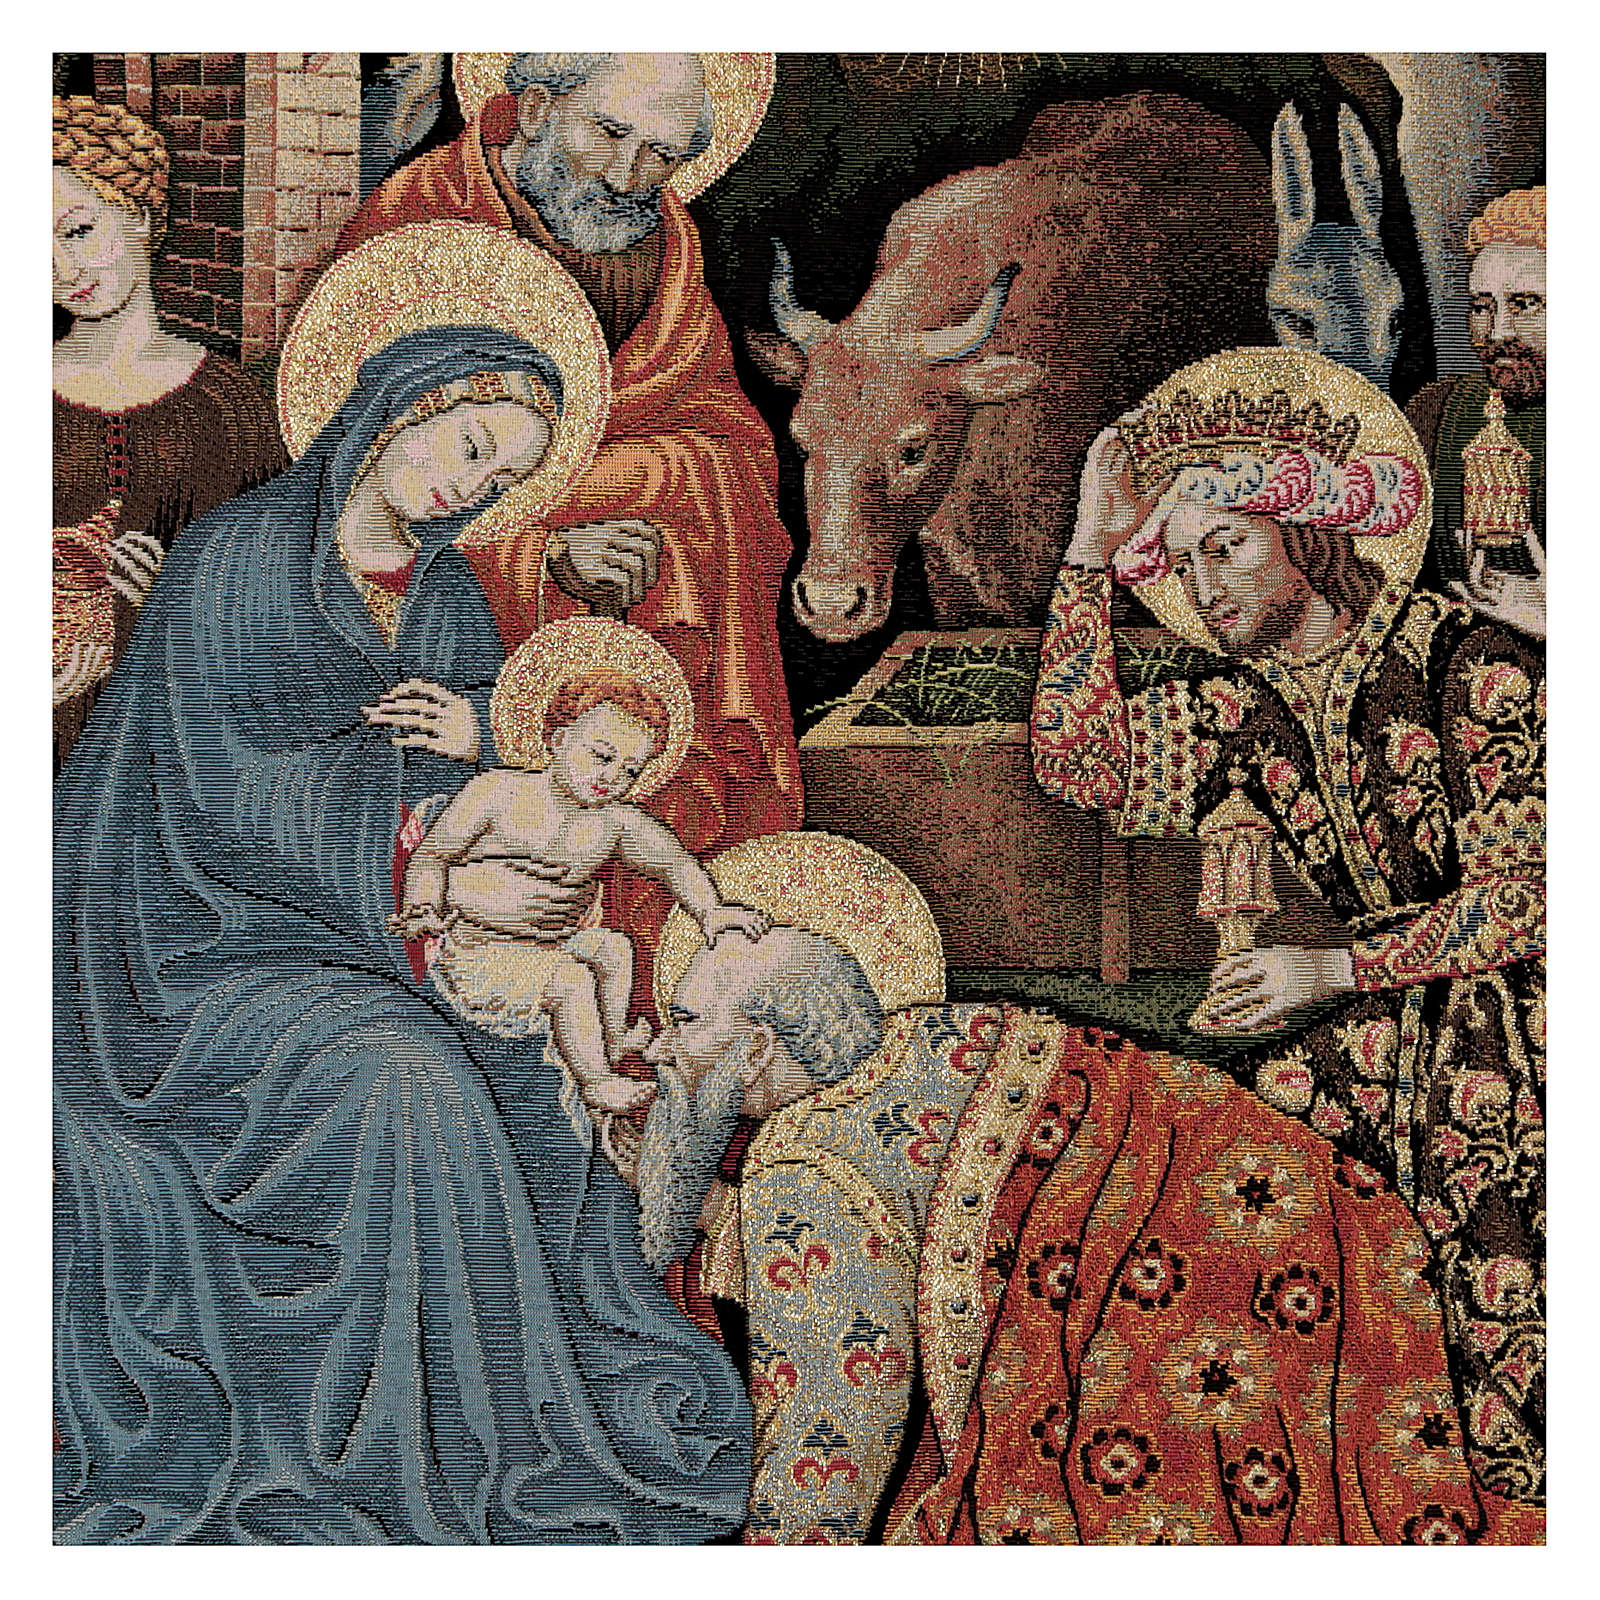 Adoration of the Magi by Gentile da Fabriano Tapestry 60x80cm 3